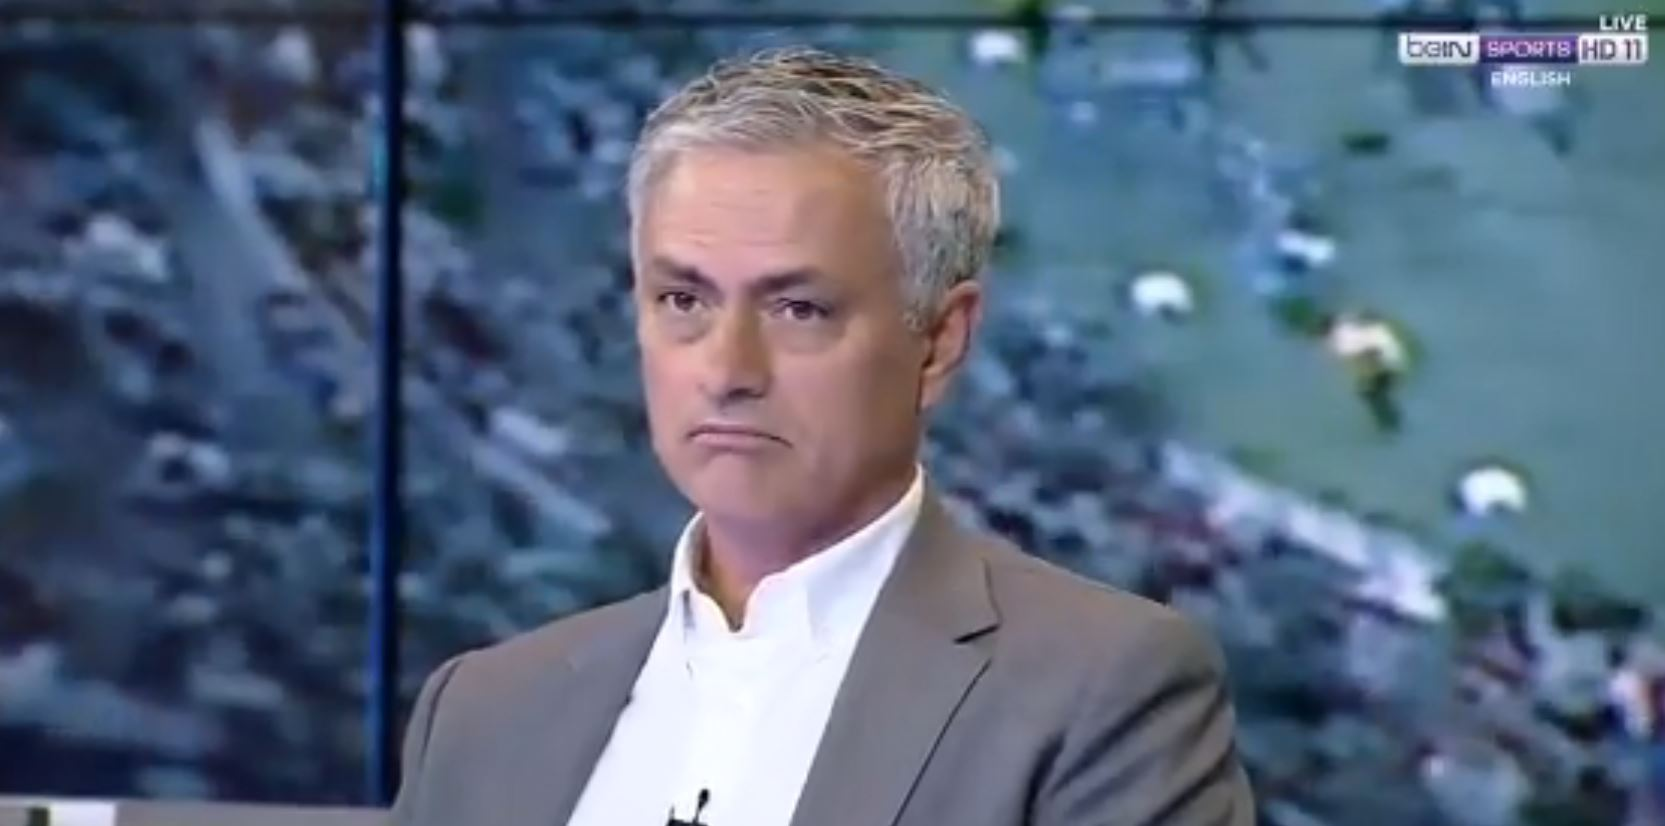 Jose Mourinho slams Matthijs de Ligt and Daley Blind after Tottenham's comeback against Ajax